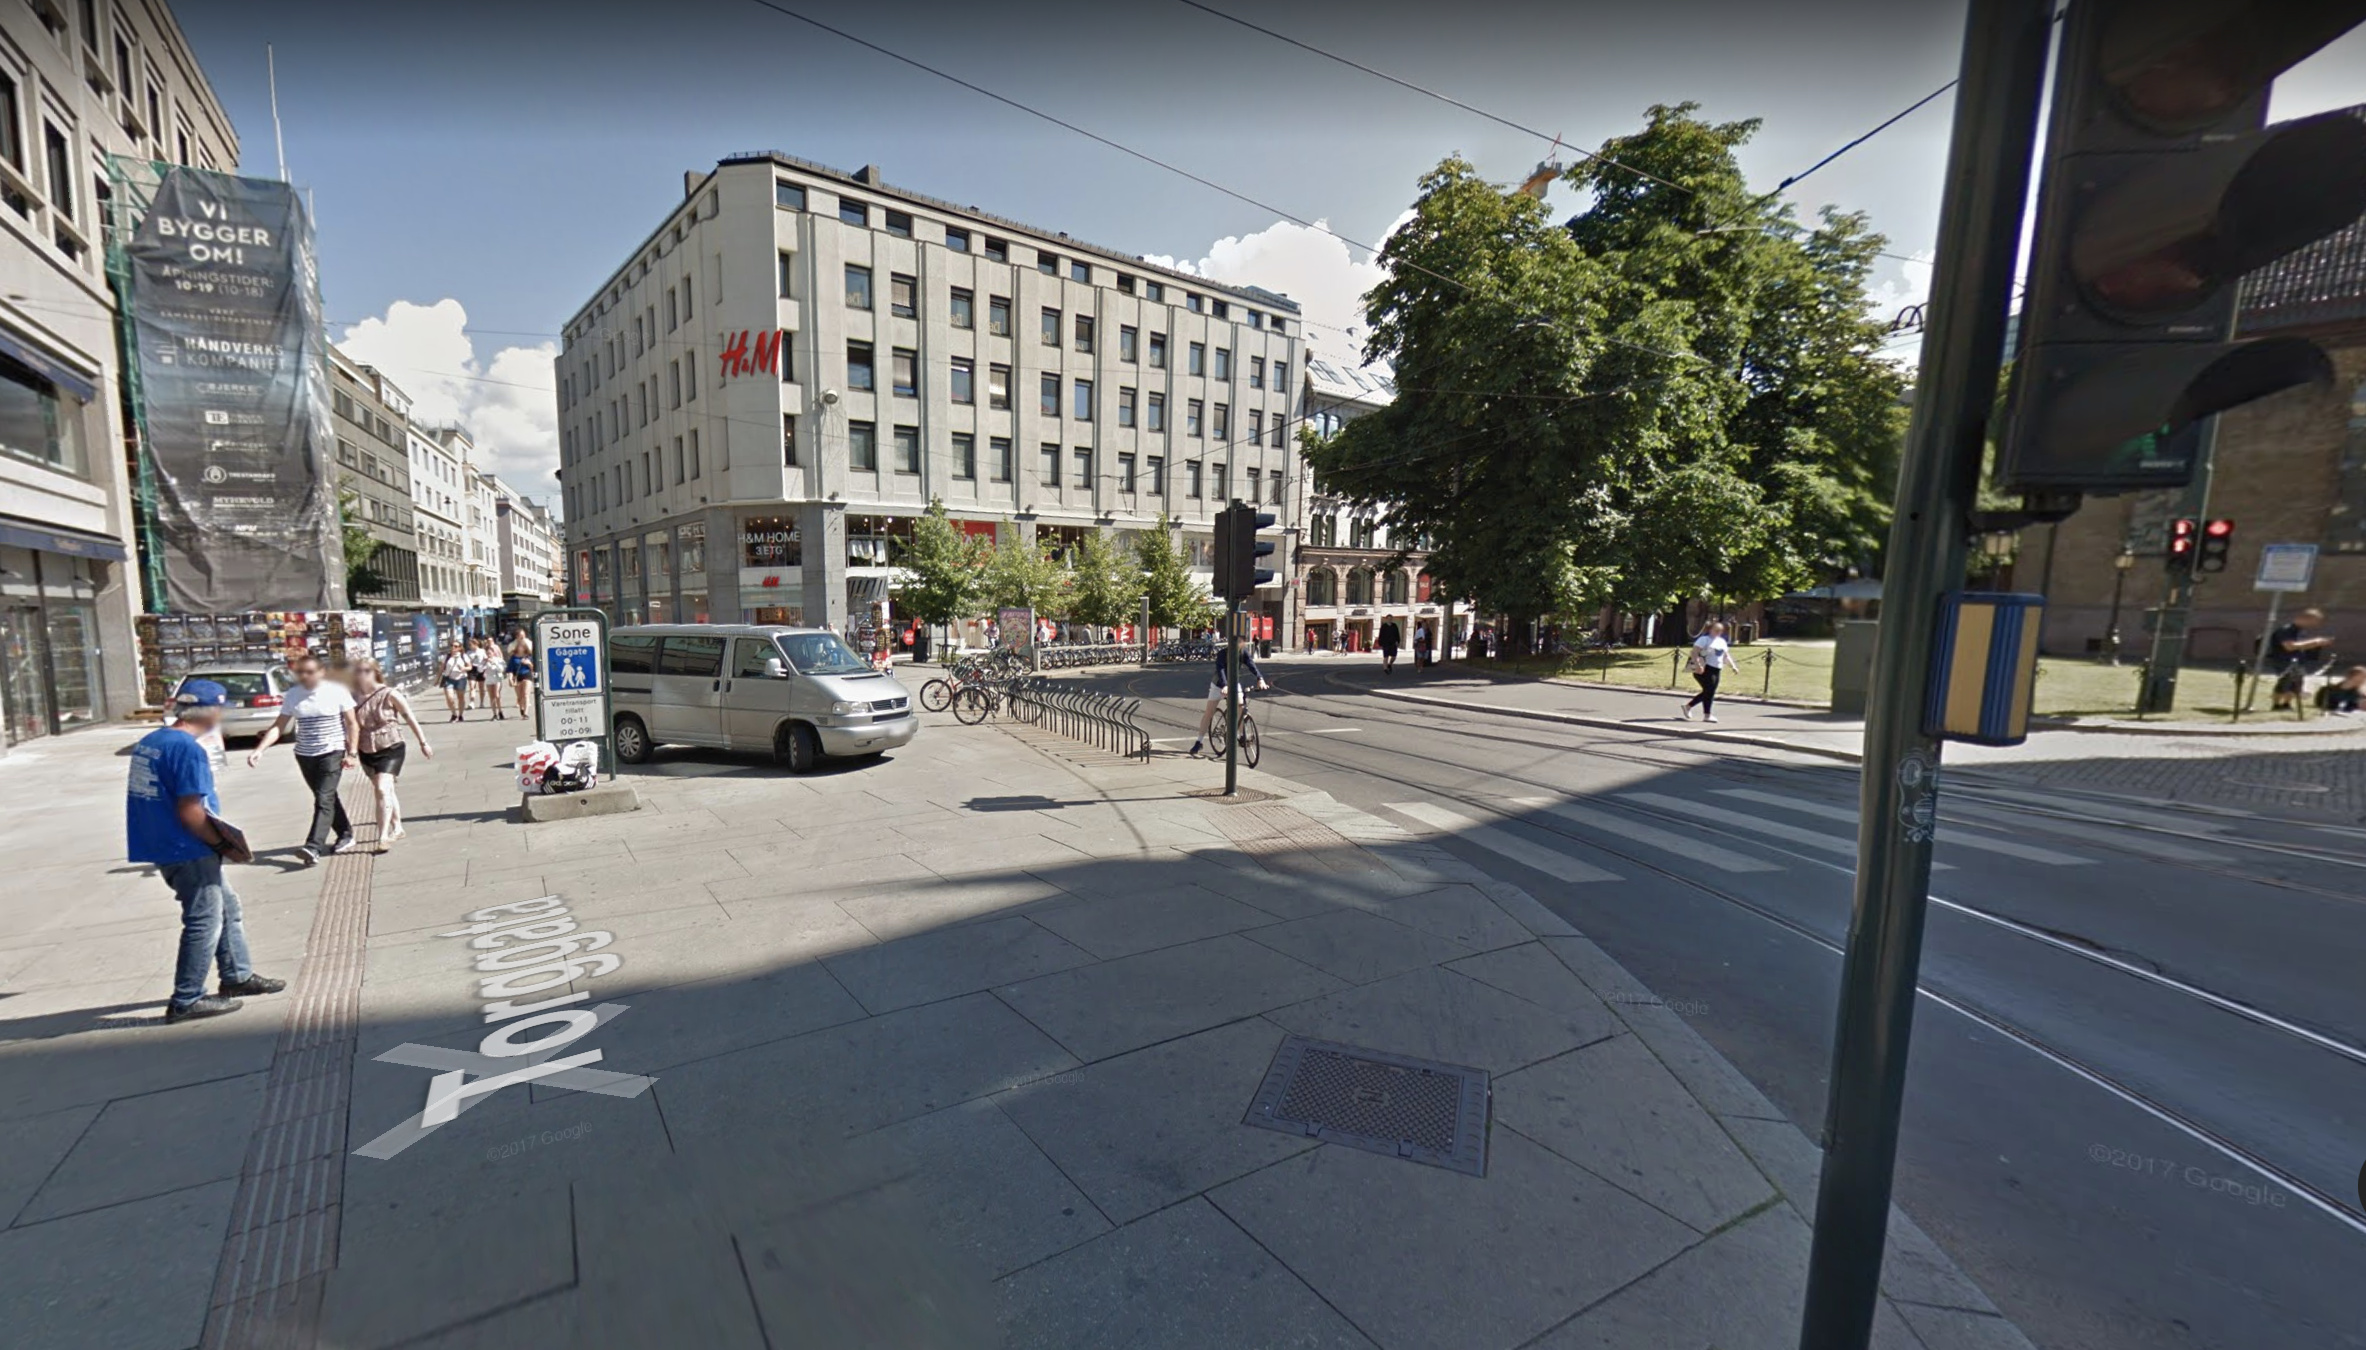 This intersection in downtown Oslo accommodates pedestrians, bikes, trams, buses and cars. The intersection was simplified by pedestrianizing one street, making another one way, and as a result maximizing pedestrian space. In effect it feels less like an intersection and more like a narrow asphalt street (though wide by Oslo standards).